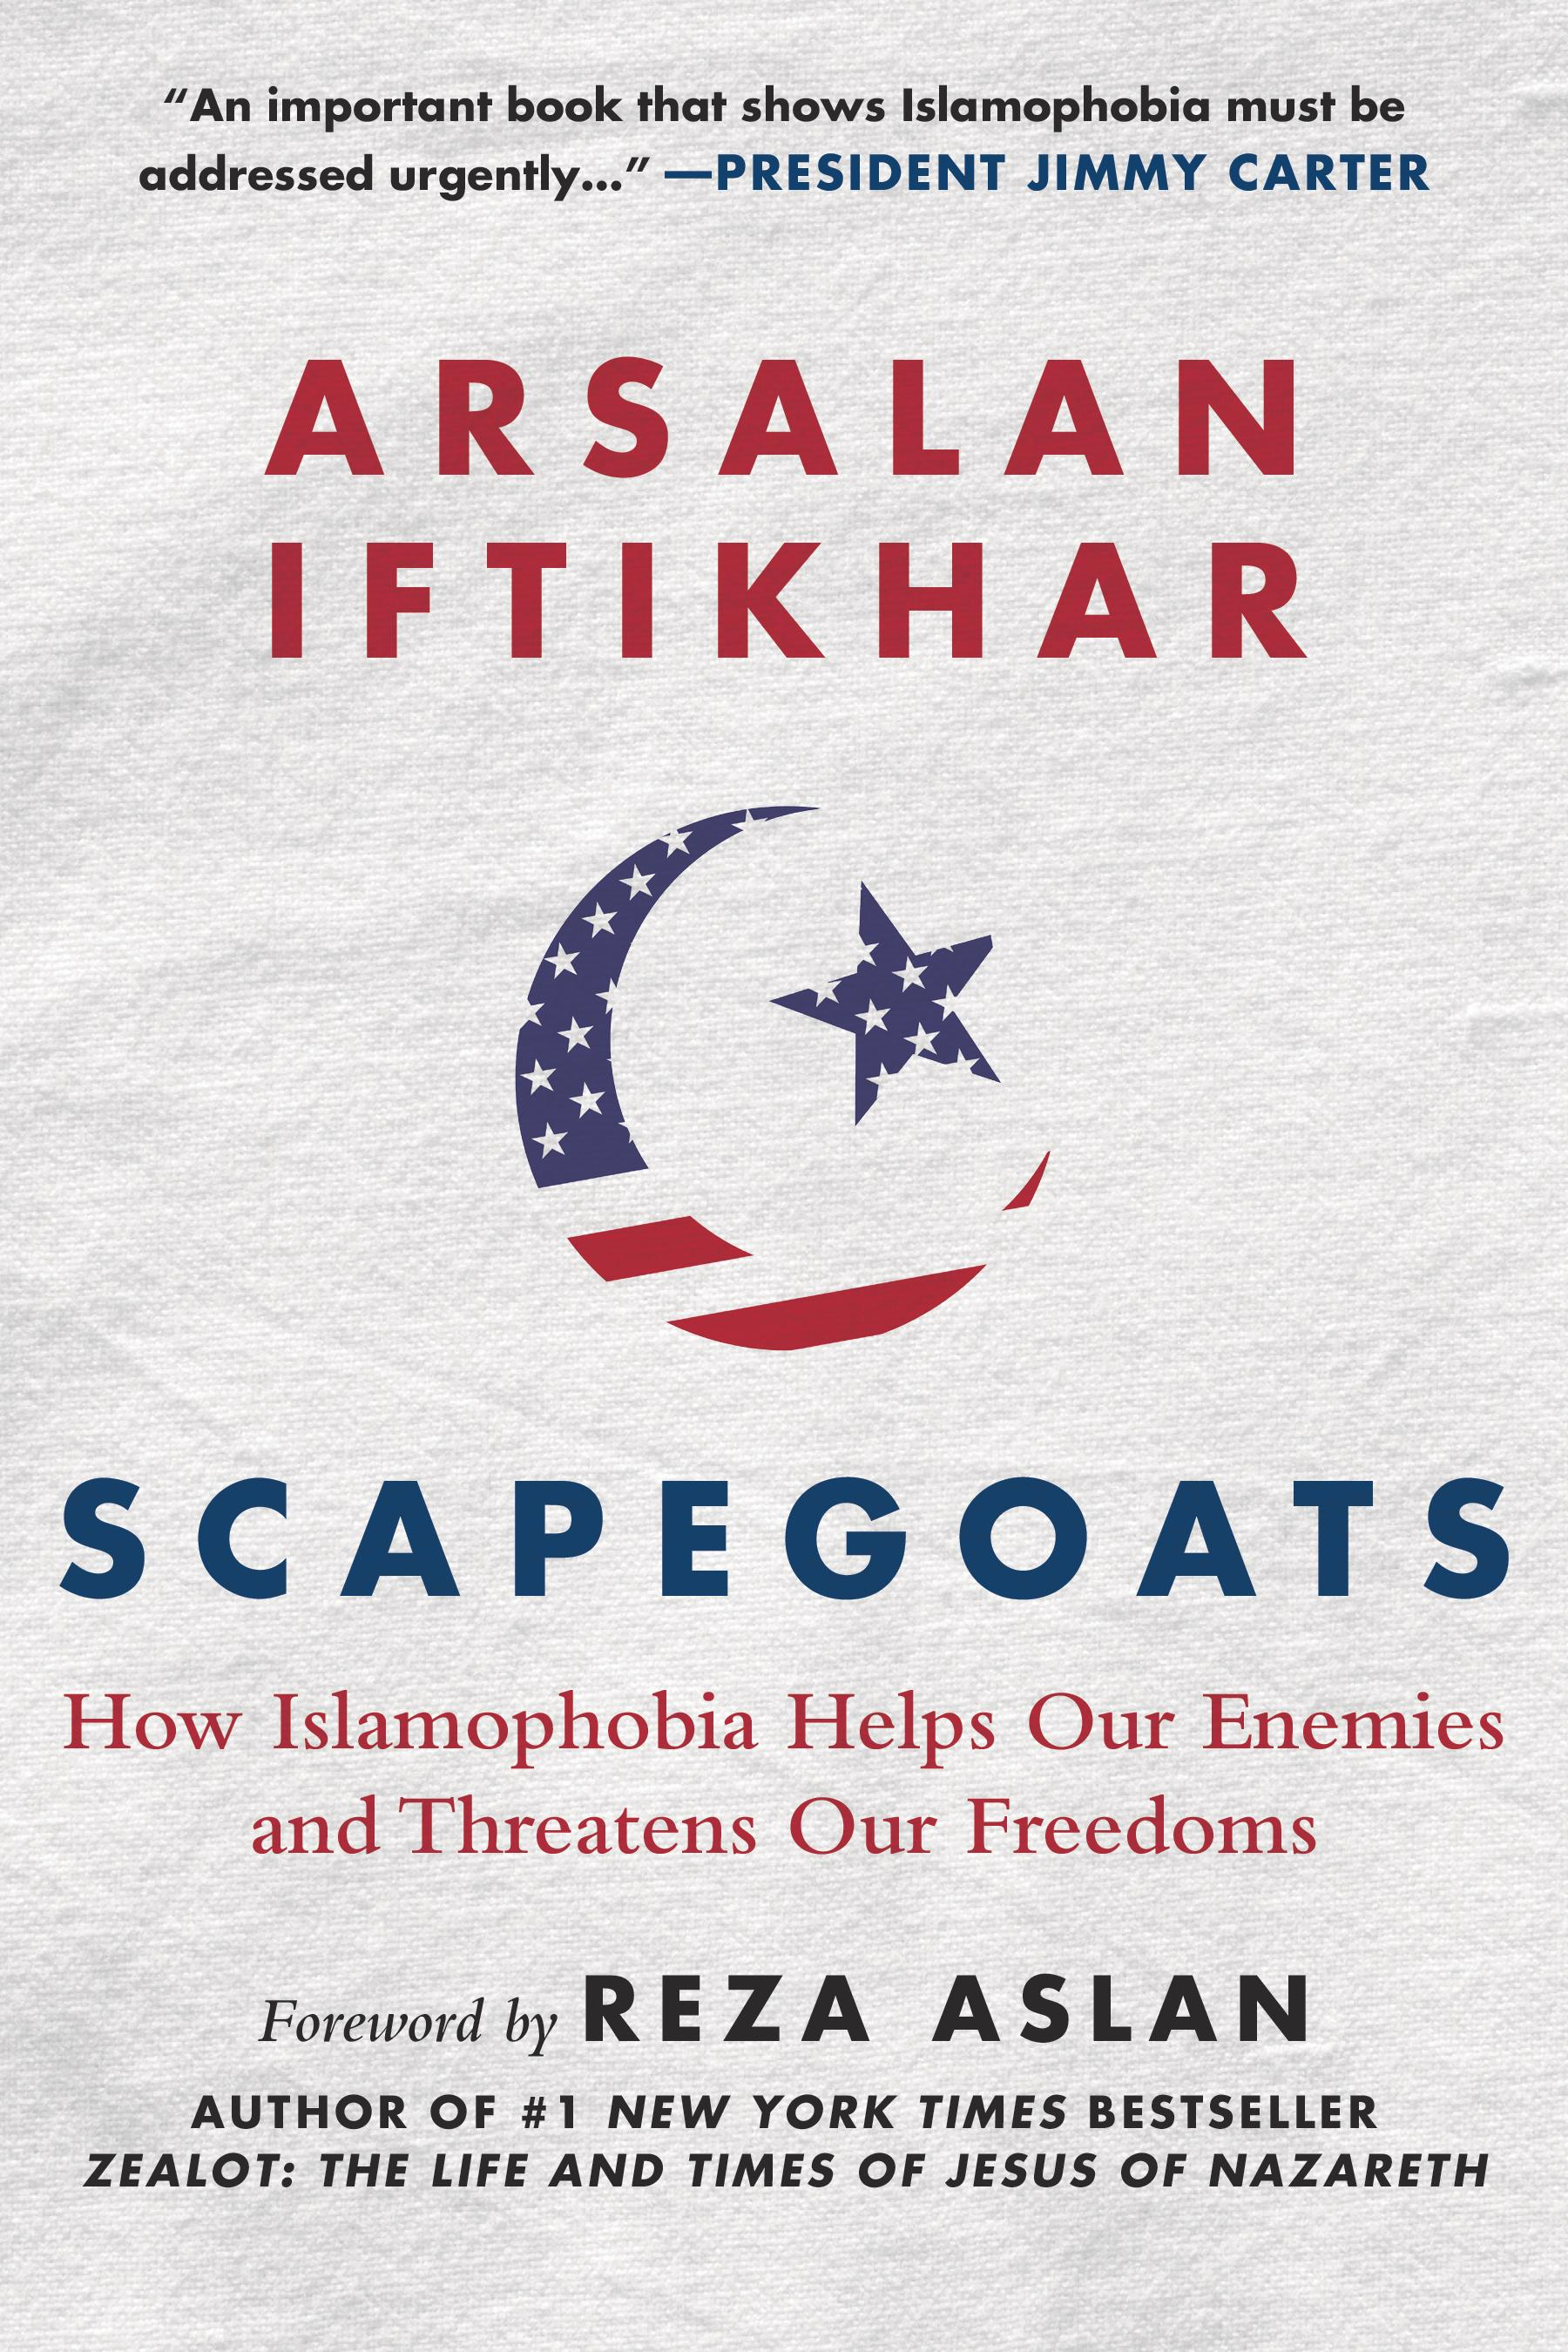 Scapegoats: How Islamophobia Helps Our Enemies and Threatens Our Freedoms